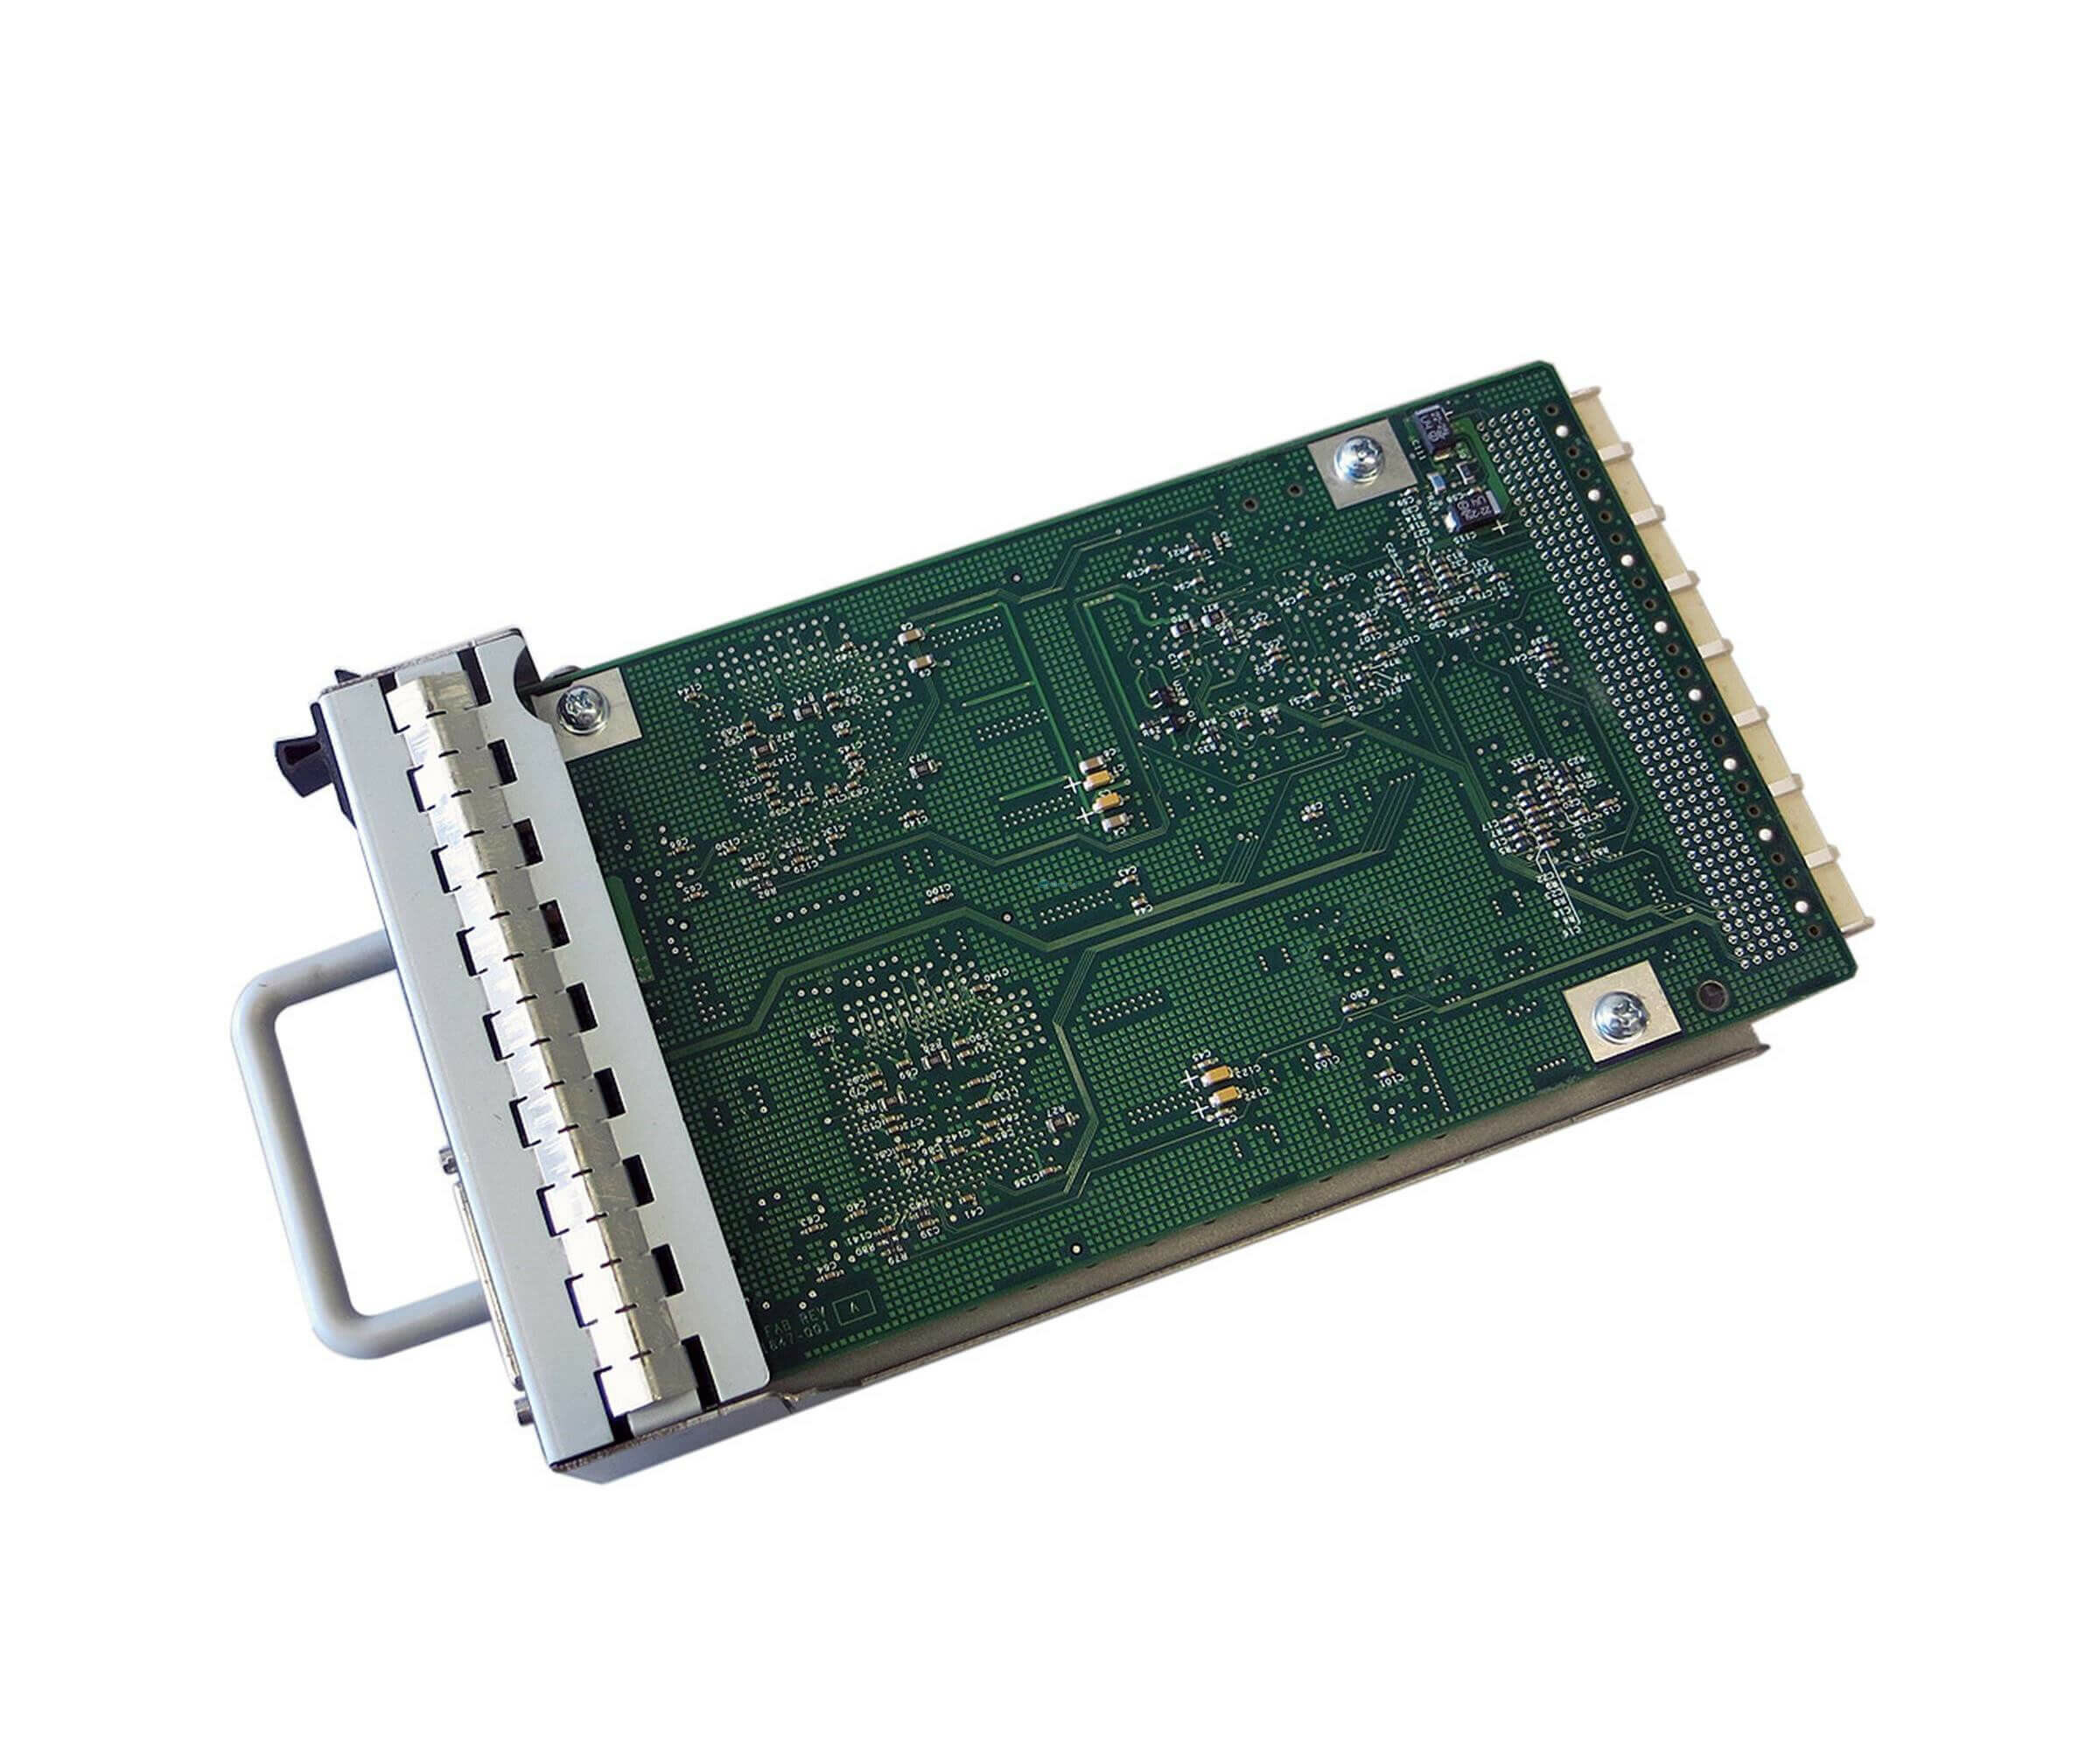 HP 411084-001 - Ultra 3 Single Port I/O SCSI Modul - für HP StorageWorks MSA 30 - 70-40453-12